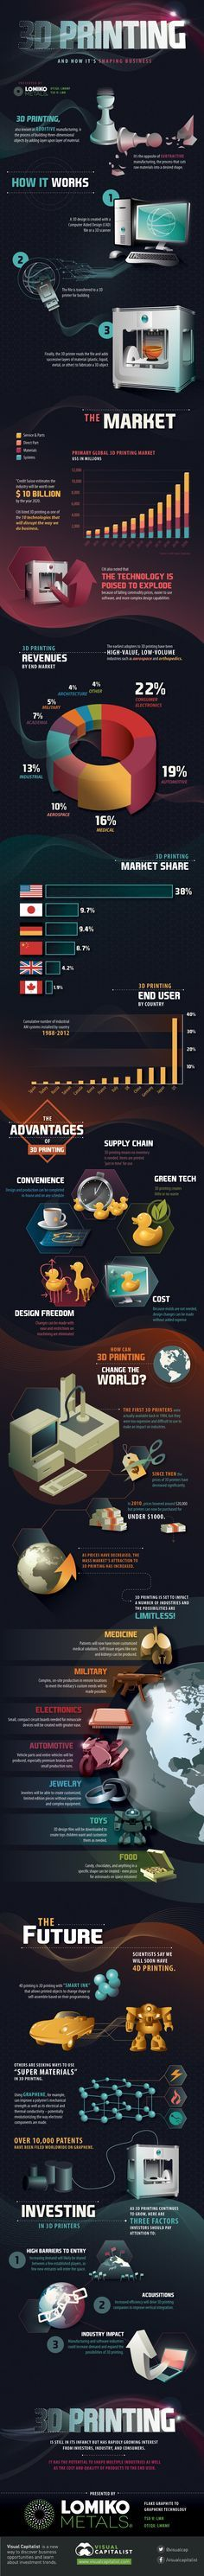 Awesome new 3D Printing Infograph